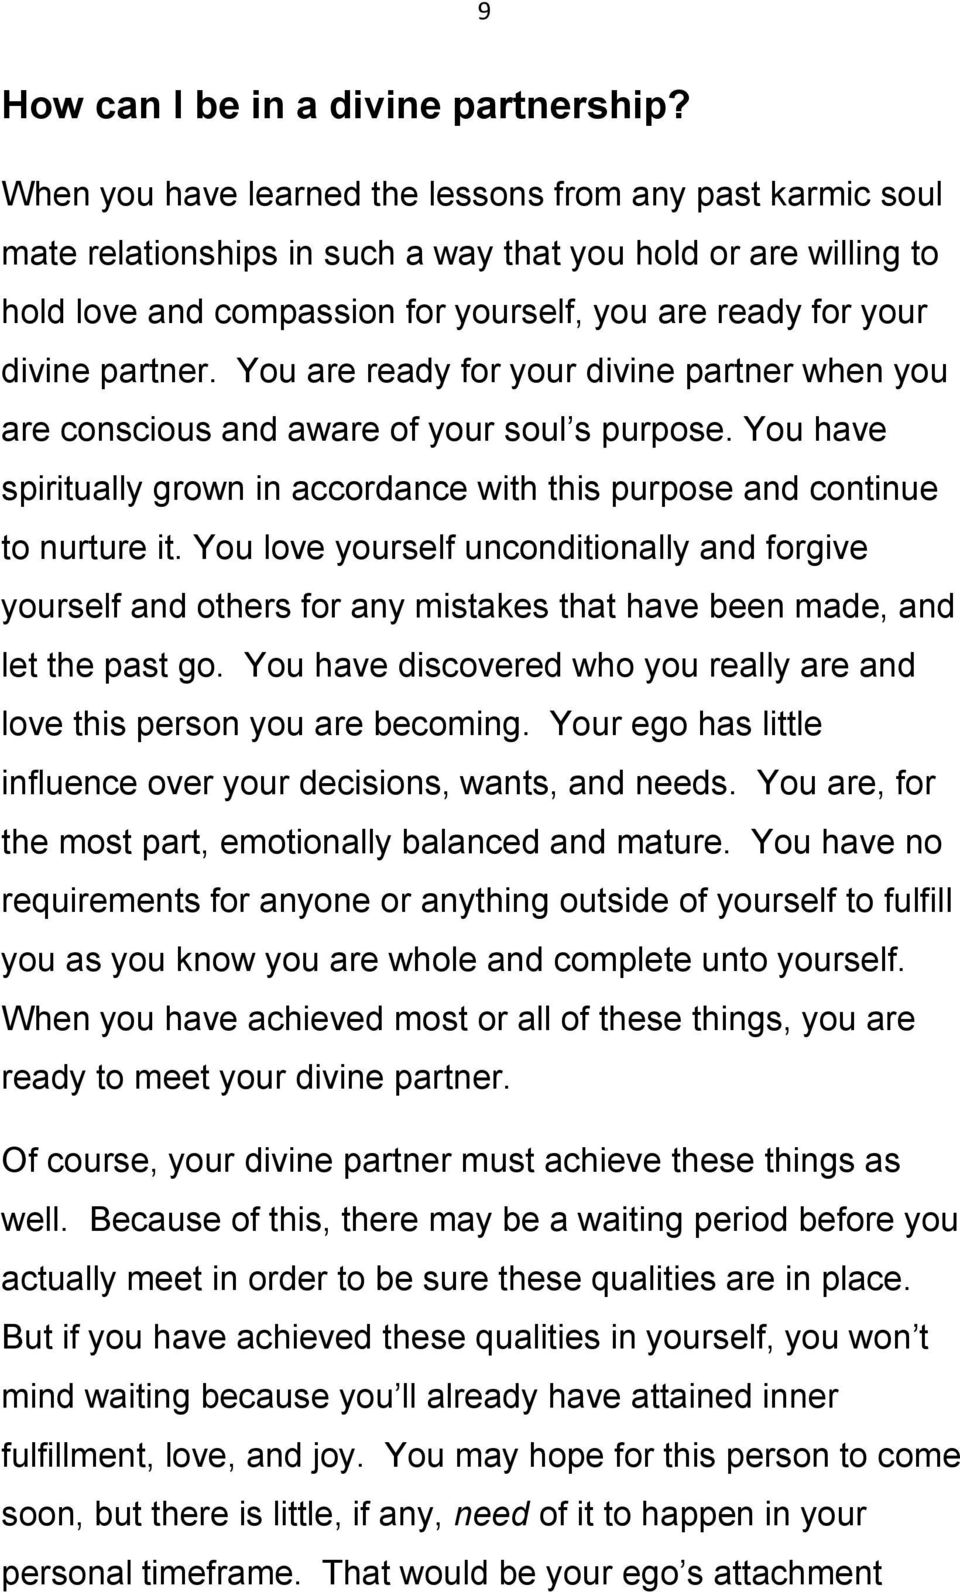 partner. You are ready for your divine partner when you are conscious and aware of your soul s purpose. You have spiritually grown in accordance with this purpose and continue to nurture it.